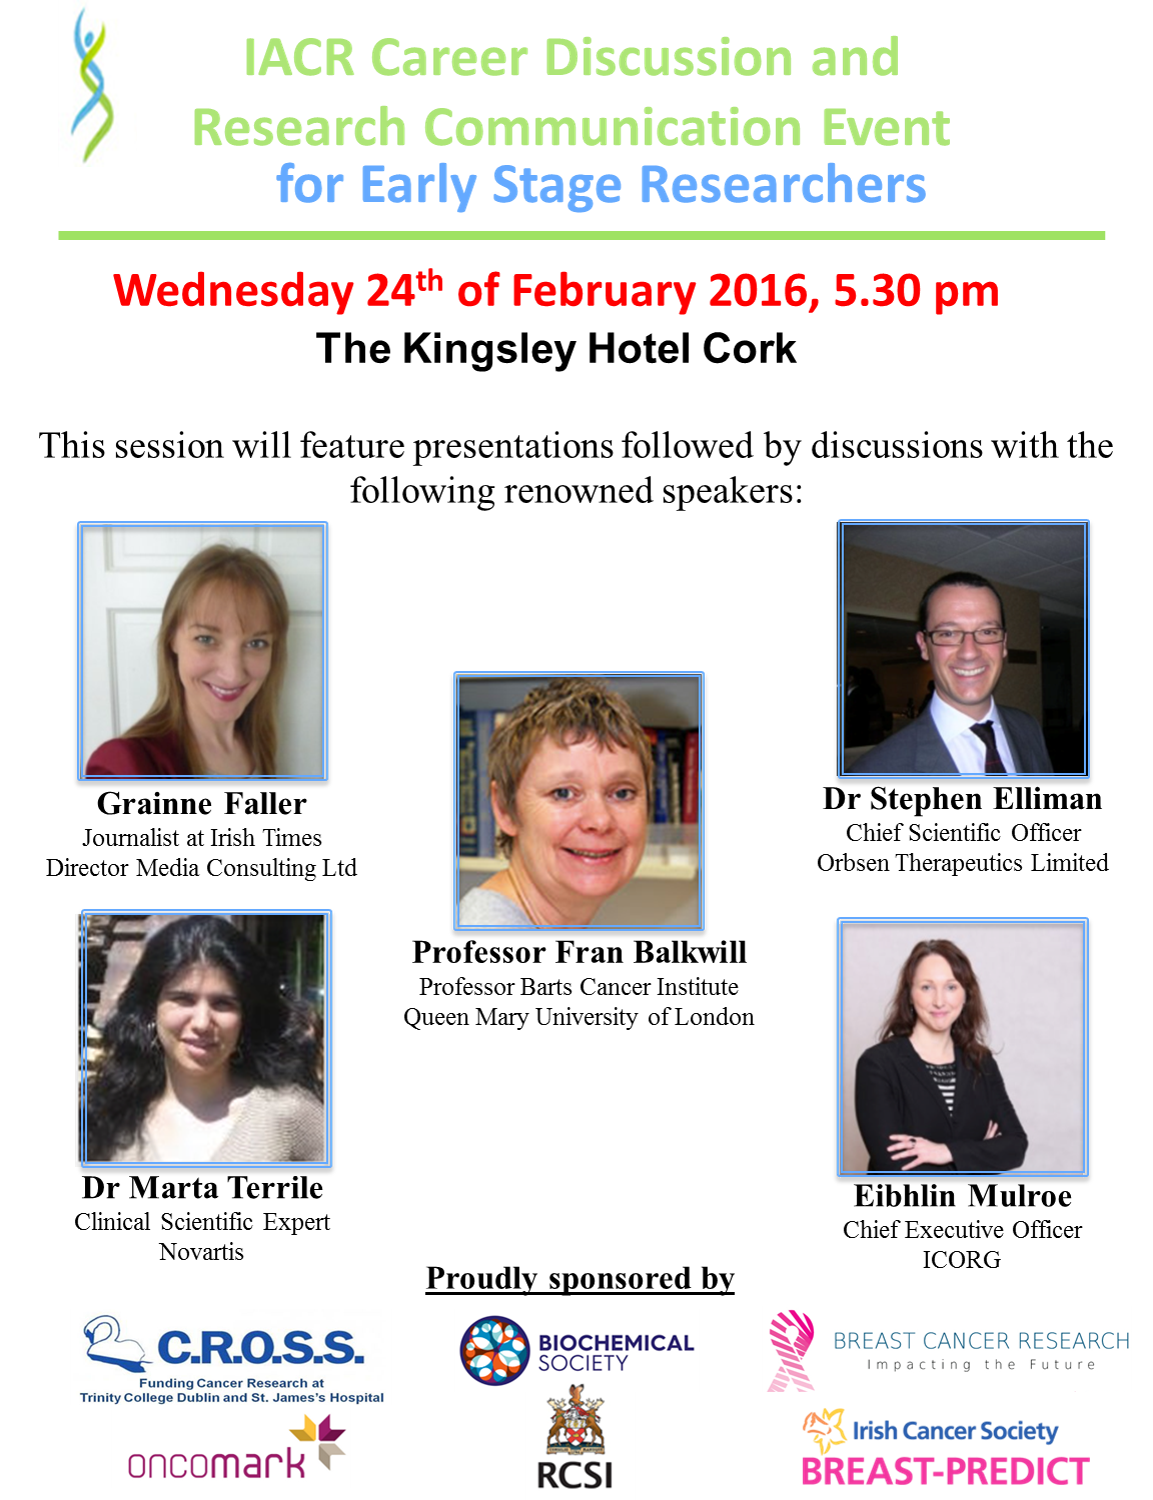 Communication event for early stage researchers